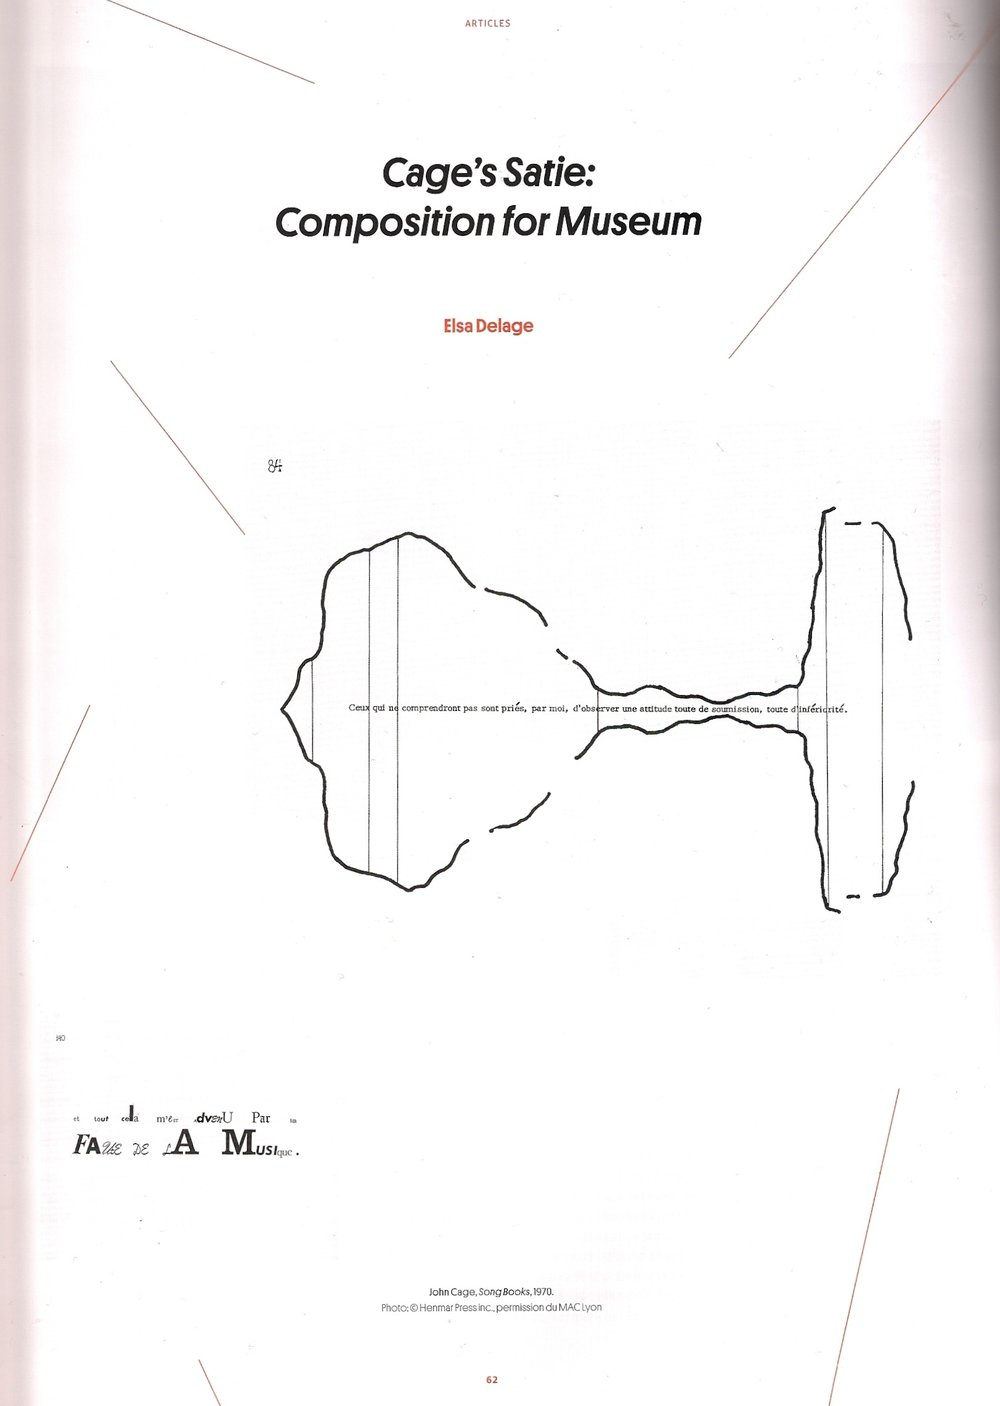 Cage's Satie composition for museum - Esse.jpg